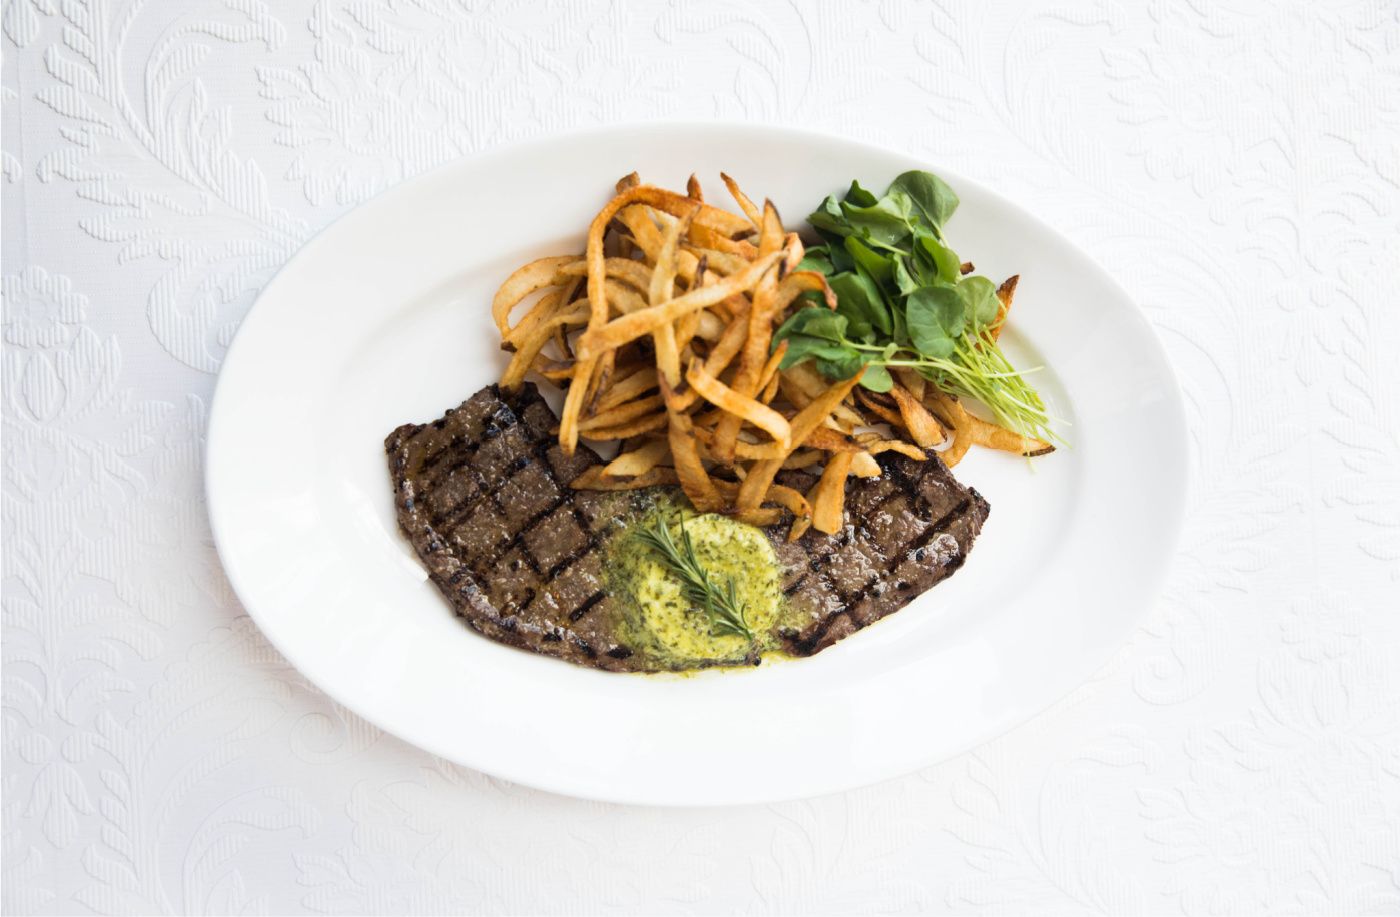 Plate of Steak Frites with maitre d'hotel butter and garnish on white French background.